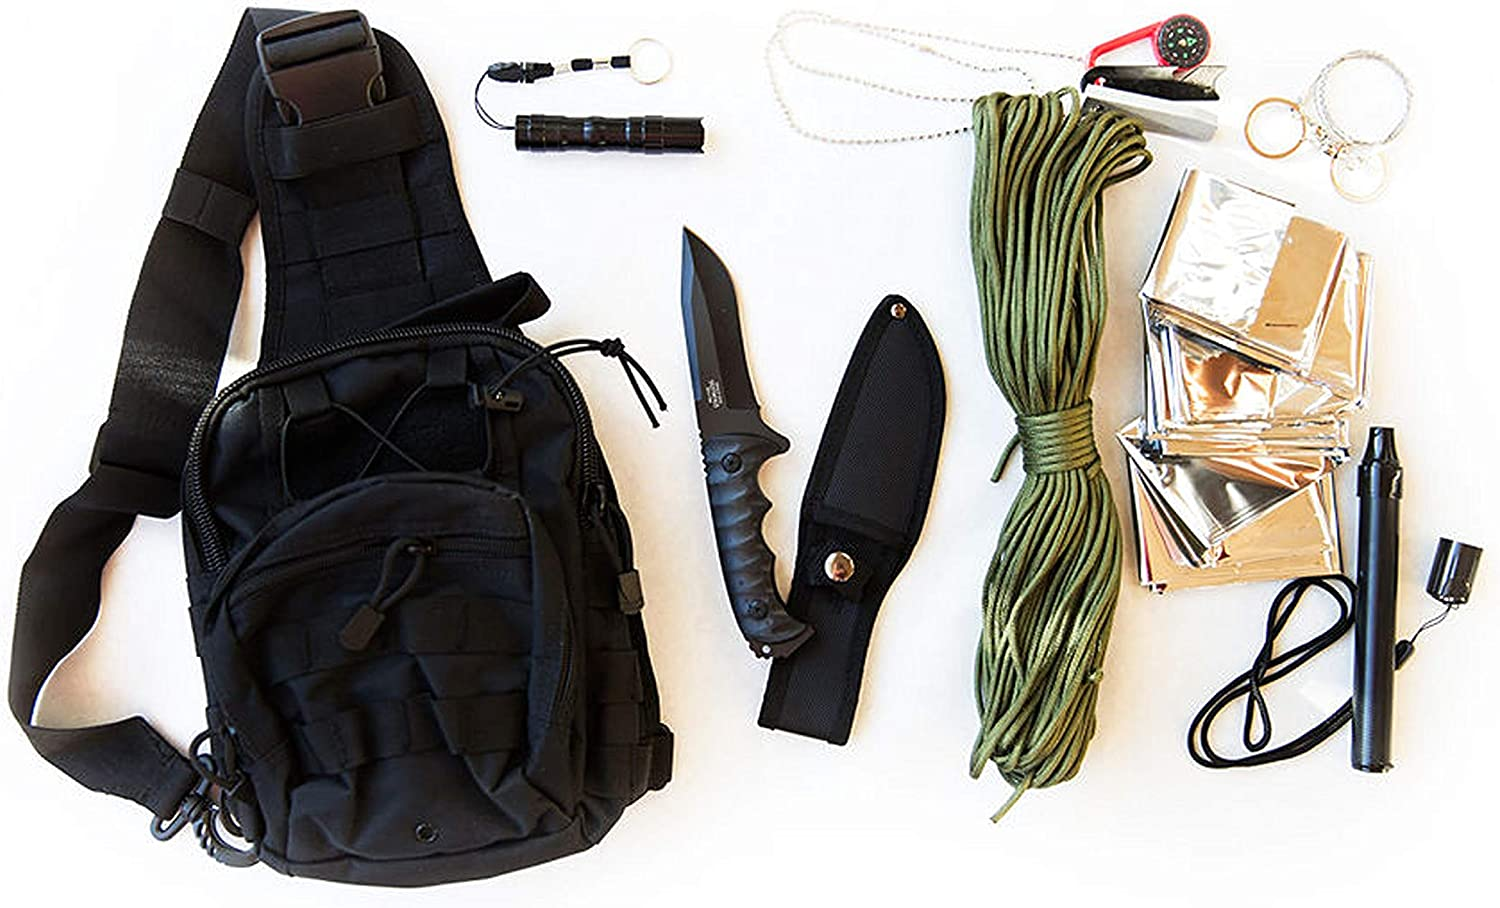 Amazon.com: Coobera Emergency Survival Backpack Kit with Bug-Out Tactical  Gear (Black): Sports & Outdoors